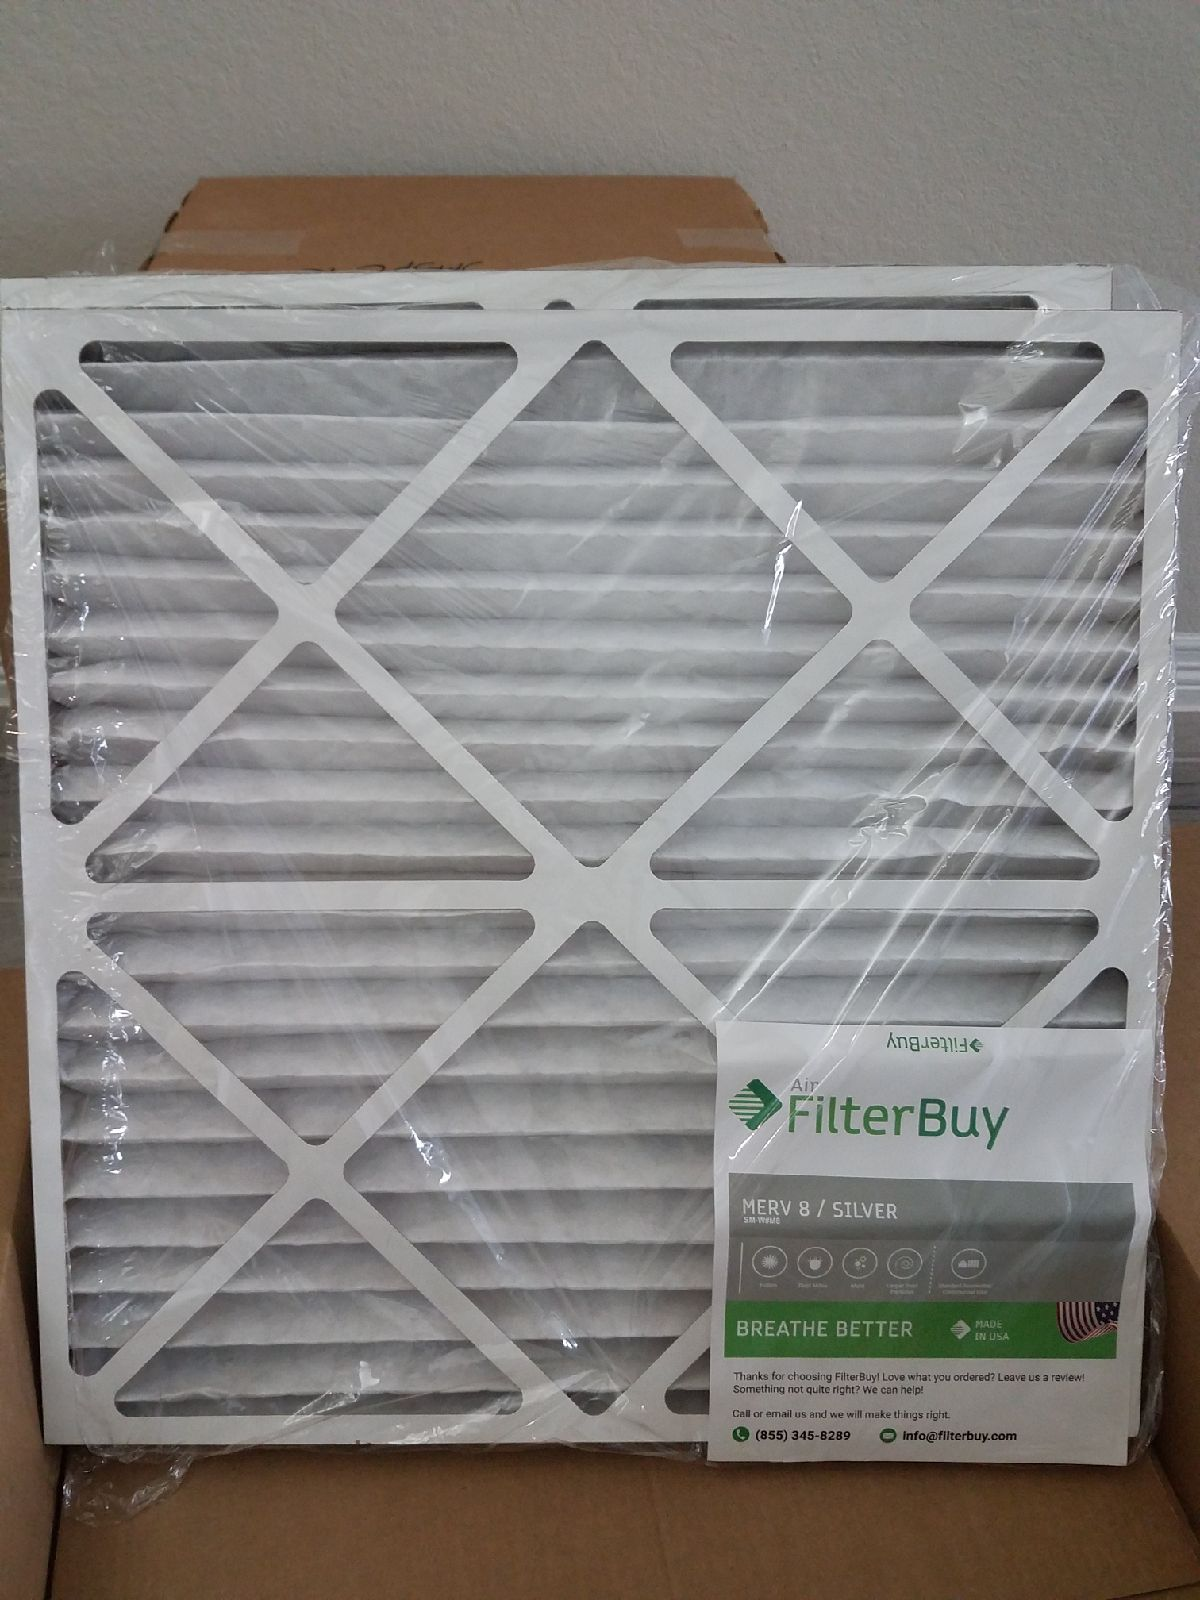 Air Filters, FilterBuy Silver, 25x25x2